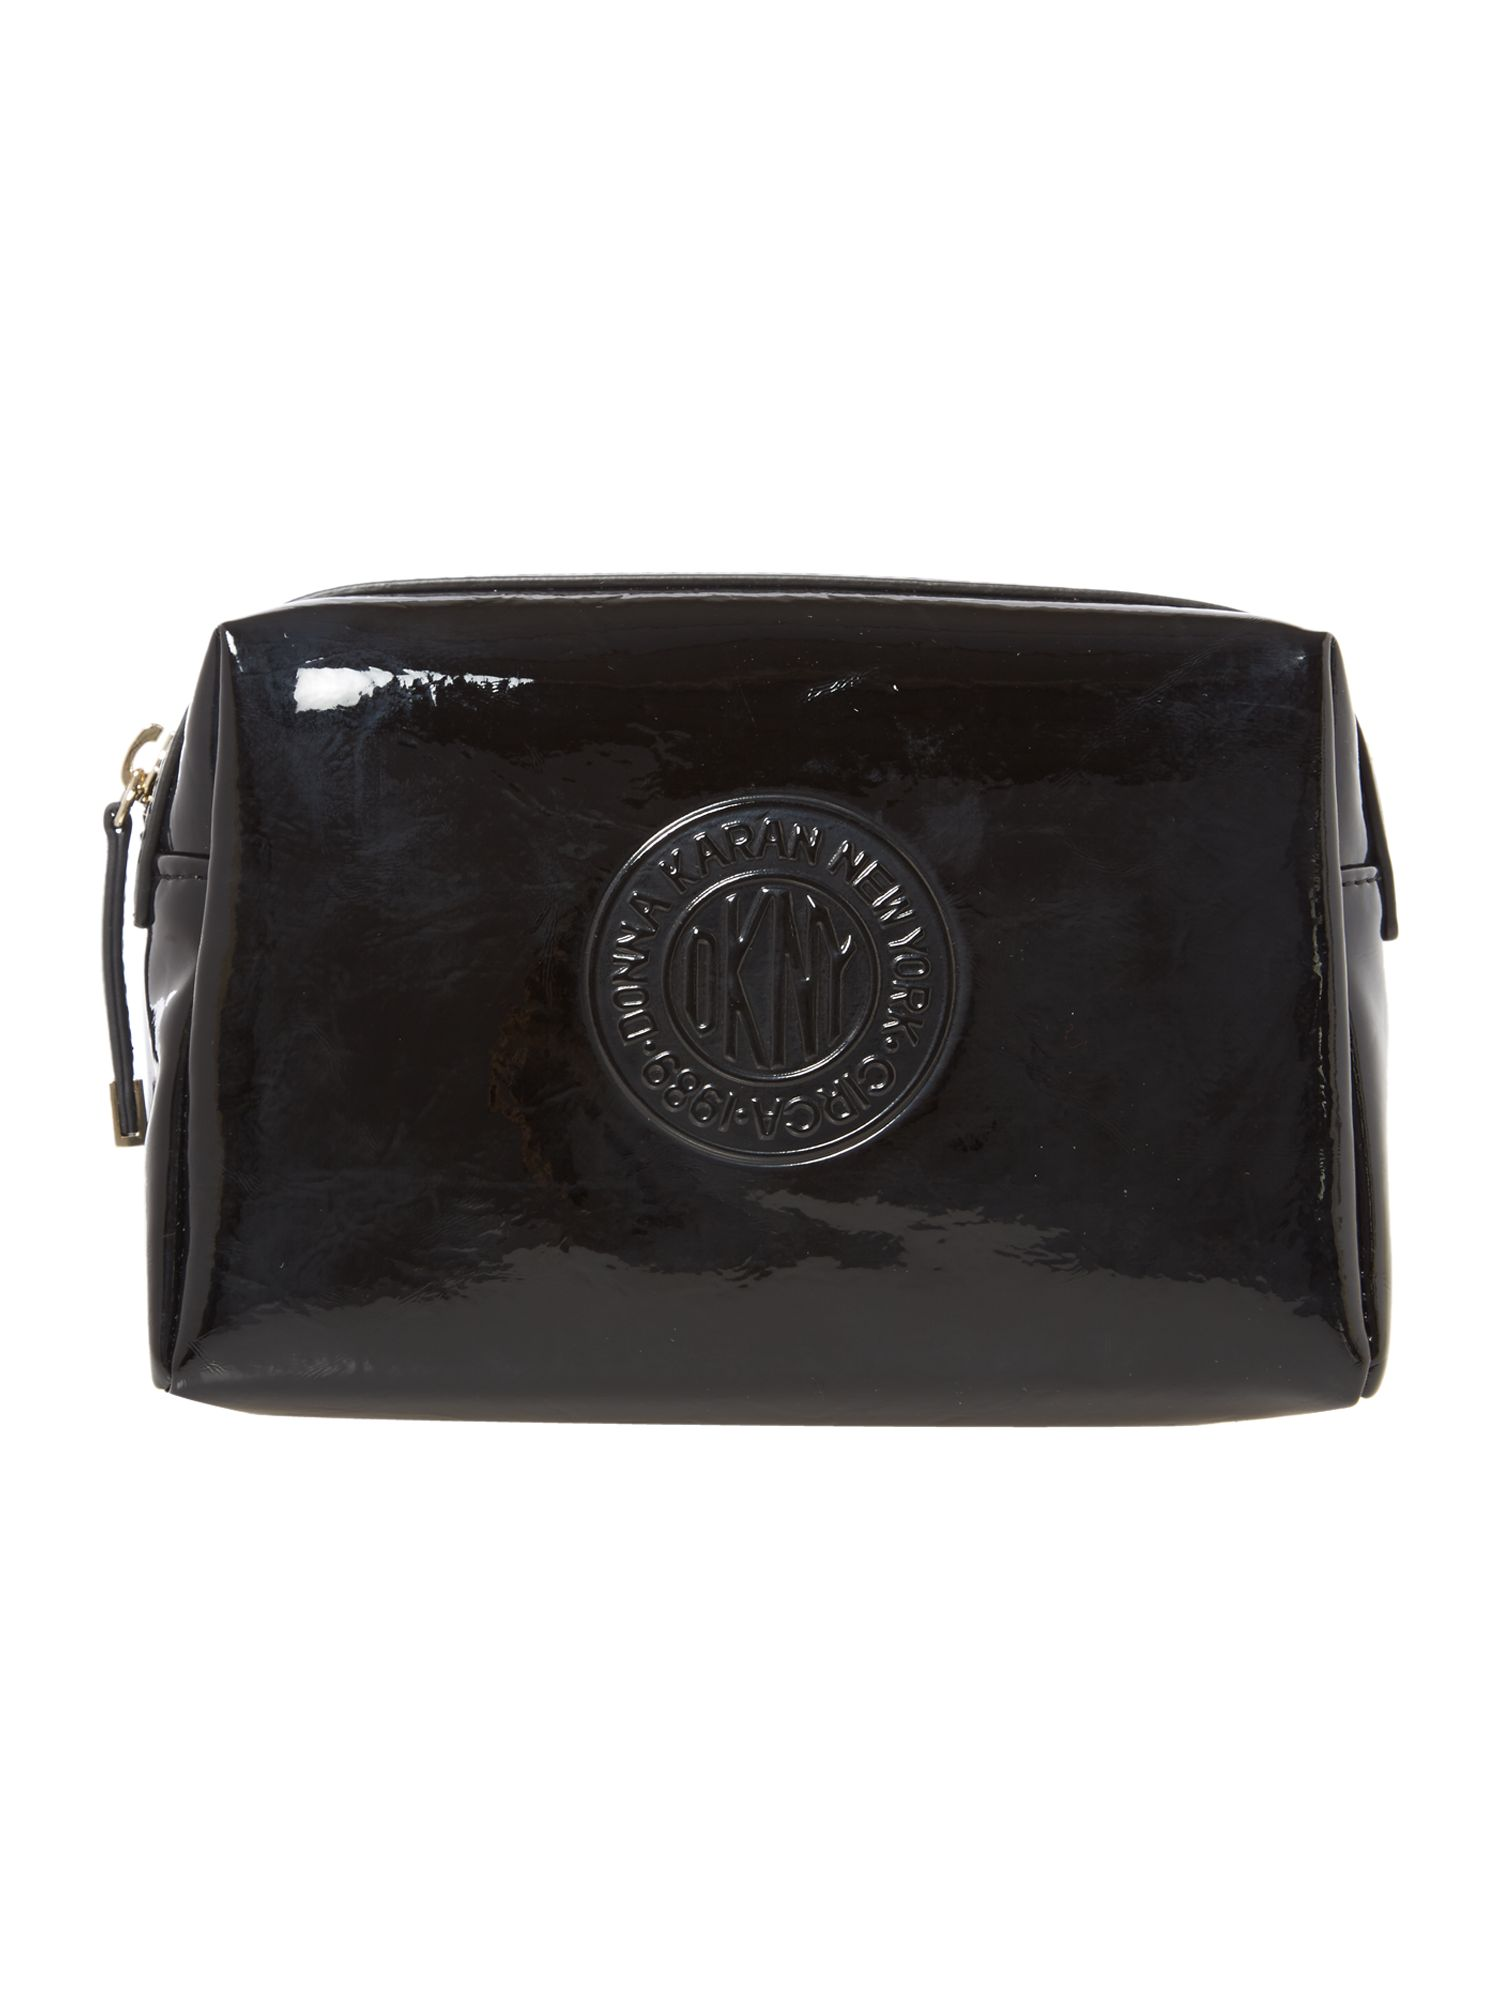 Patent logo black cosmetic bag